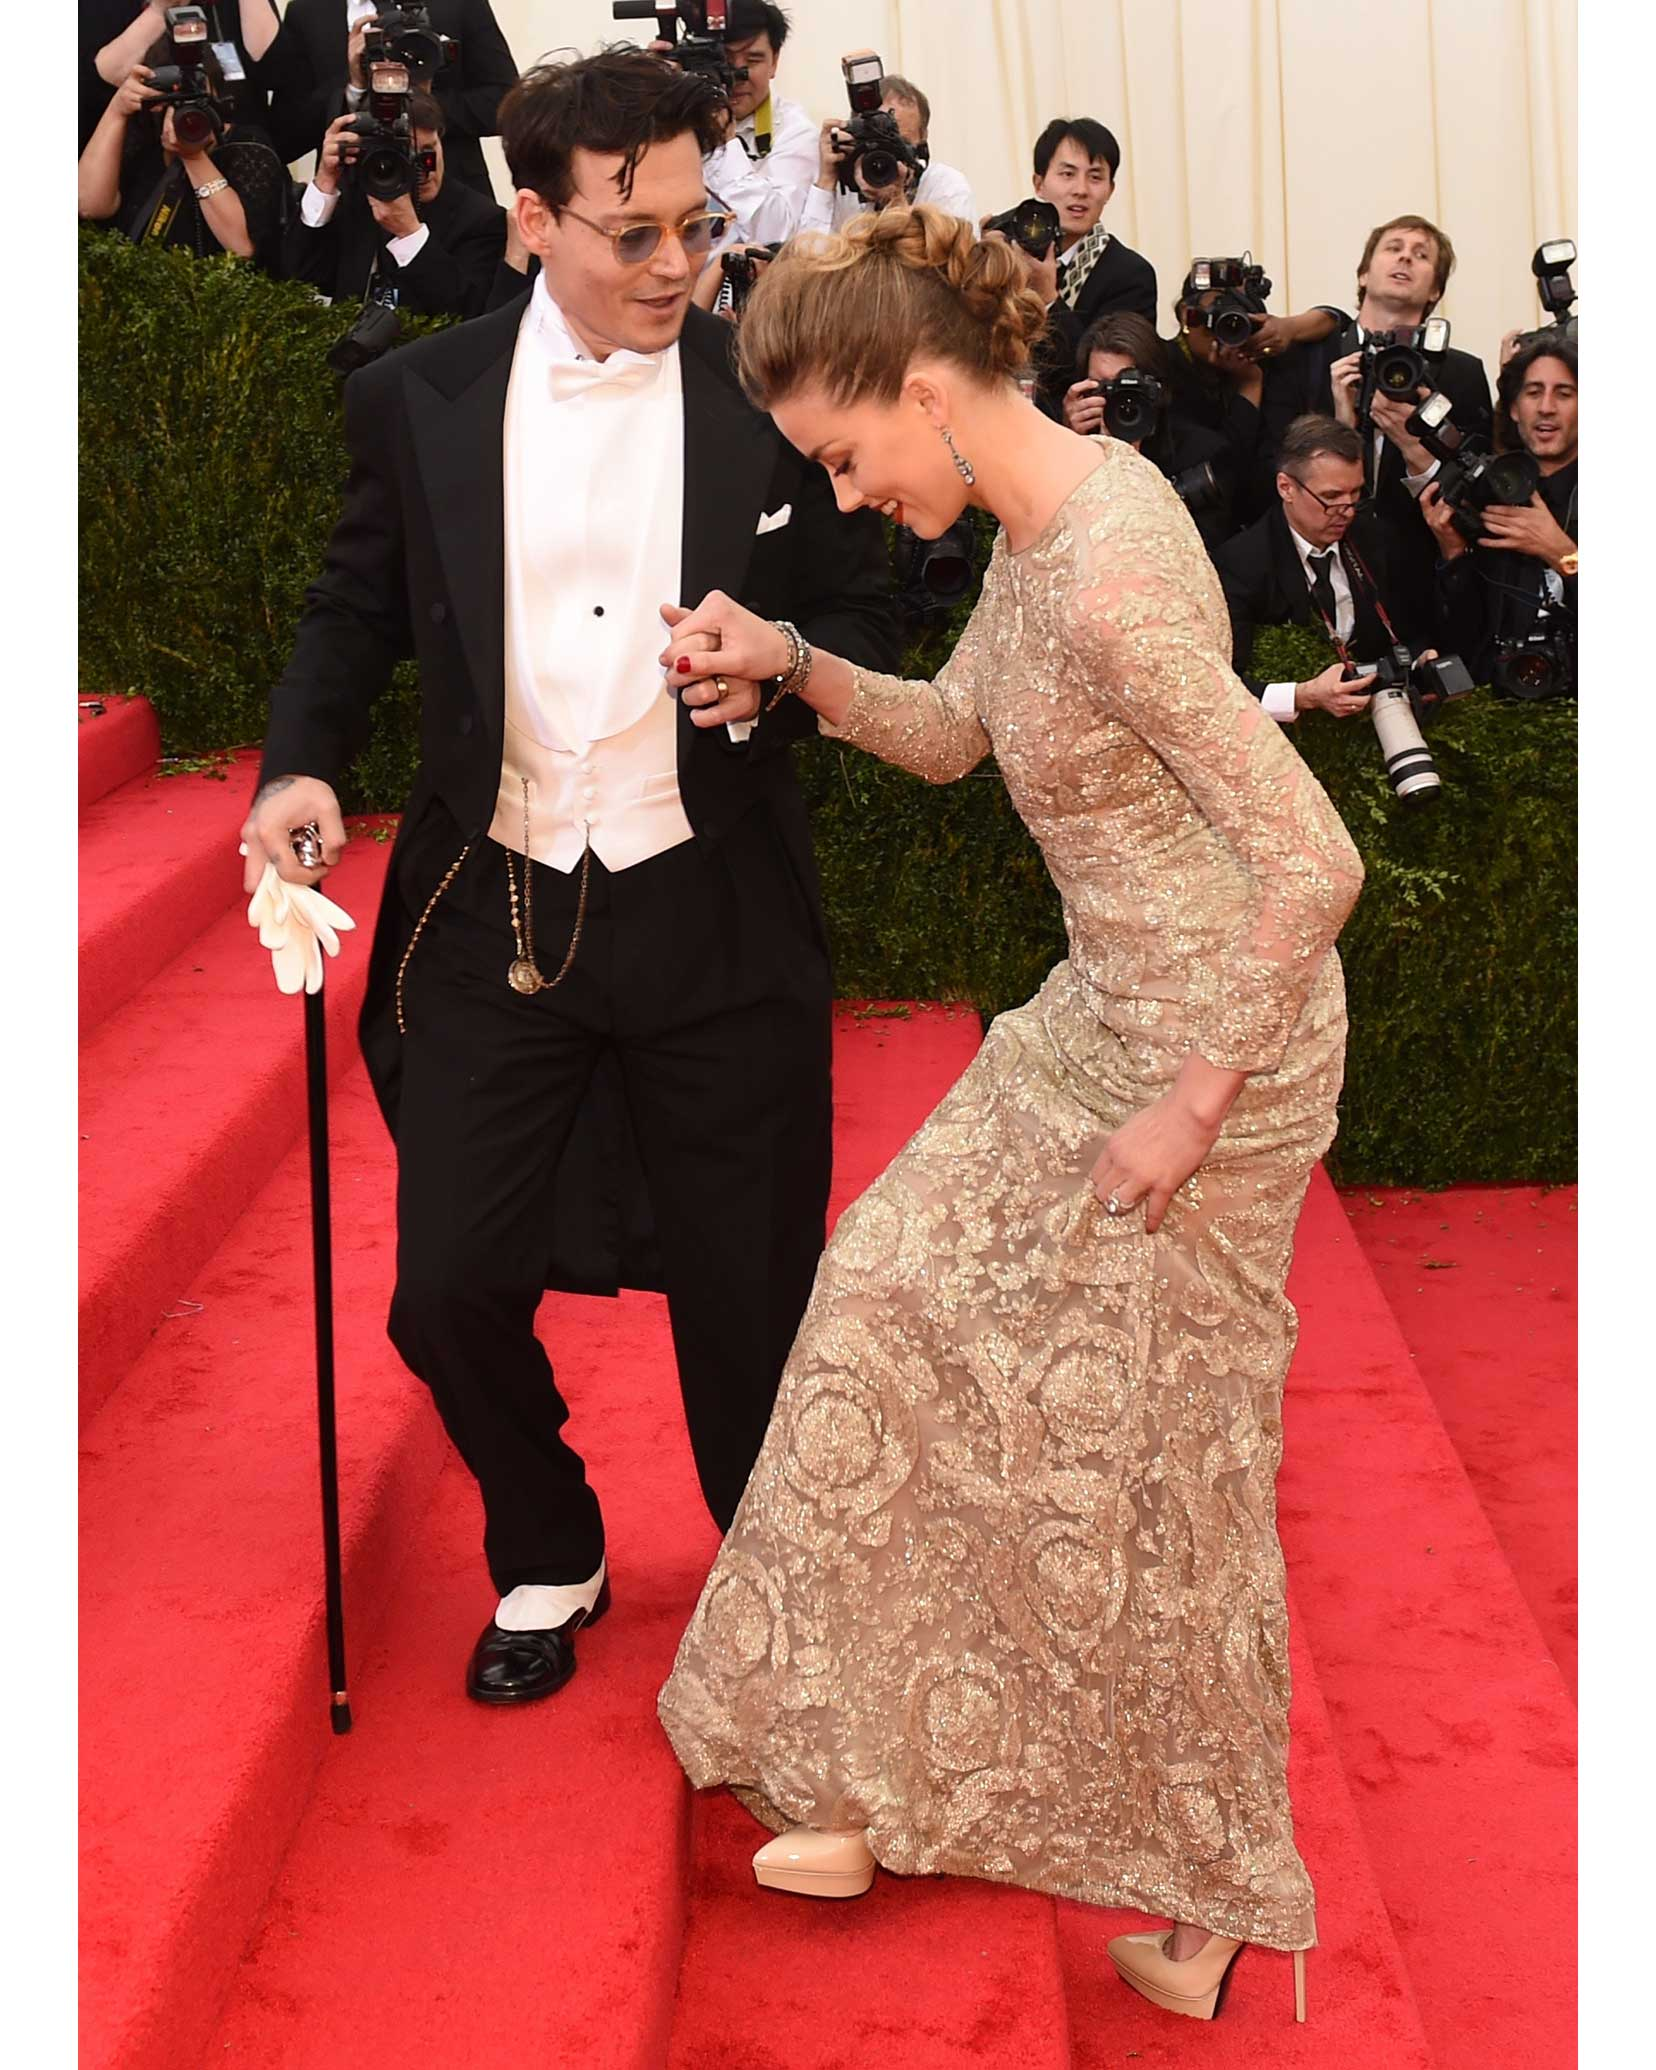 celebrity-couple-johnny-depp-amber-heard-met-gala-2014-walking-up-steps-red-carpet-0216.jpg